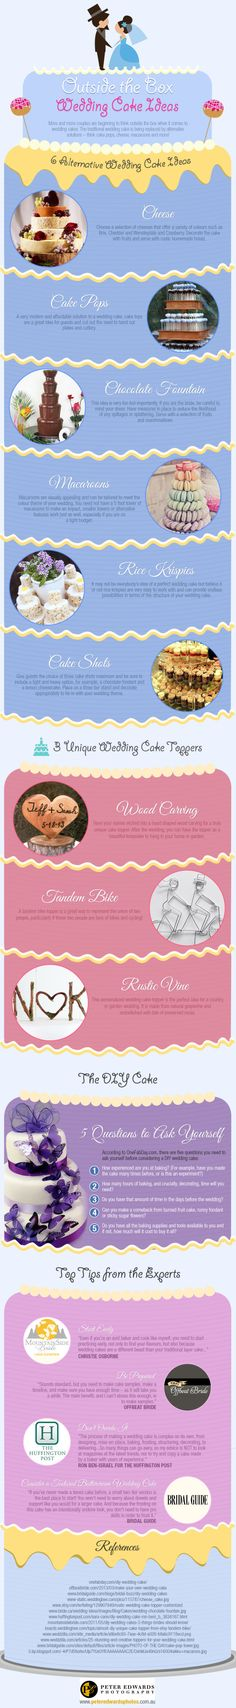 This infographic from Peter Edwards Photography looks at some of the top alternative wedding cake ideas such as cheese wedding cakes, cake pops and more. Also, get some great ideas for unique wedding cake toppers. Alternative Wedding Cakes, Wedding Cake Alternatives, Cool Wedding Cakes, Wedding Cake Toppers, Order Of Wedding Ceremony, Plan Your Wedding, Wedding Planning, Wedding Ideas, Wedding Guest Makeup